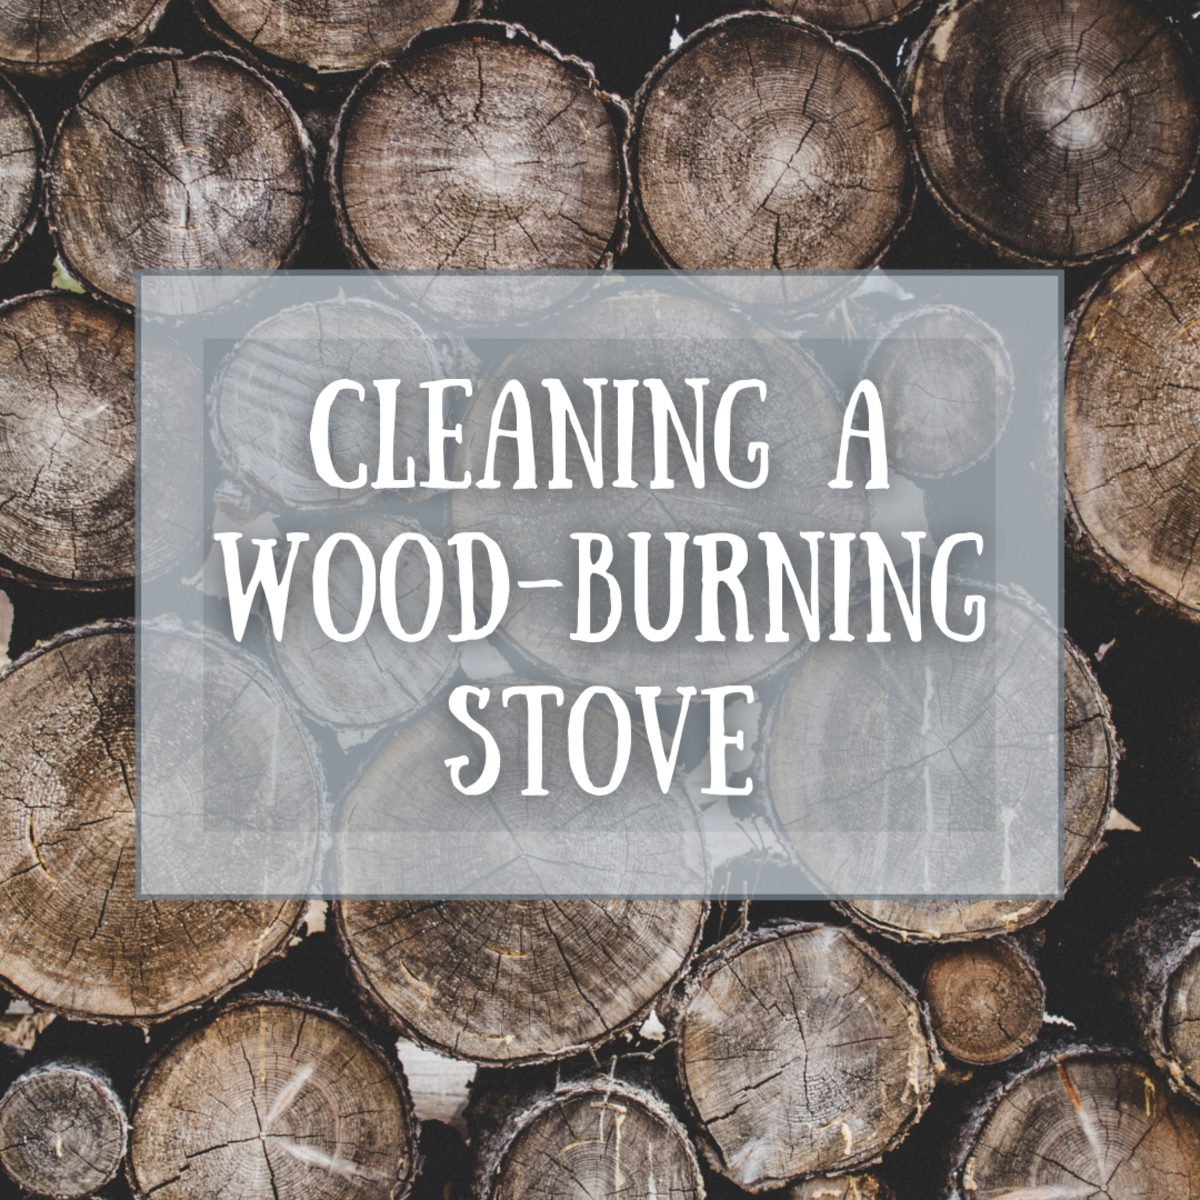 Learn how to the exterior, surface, interior, and flue of your wood-burning stove